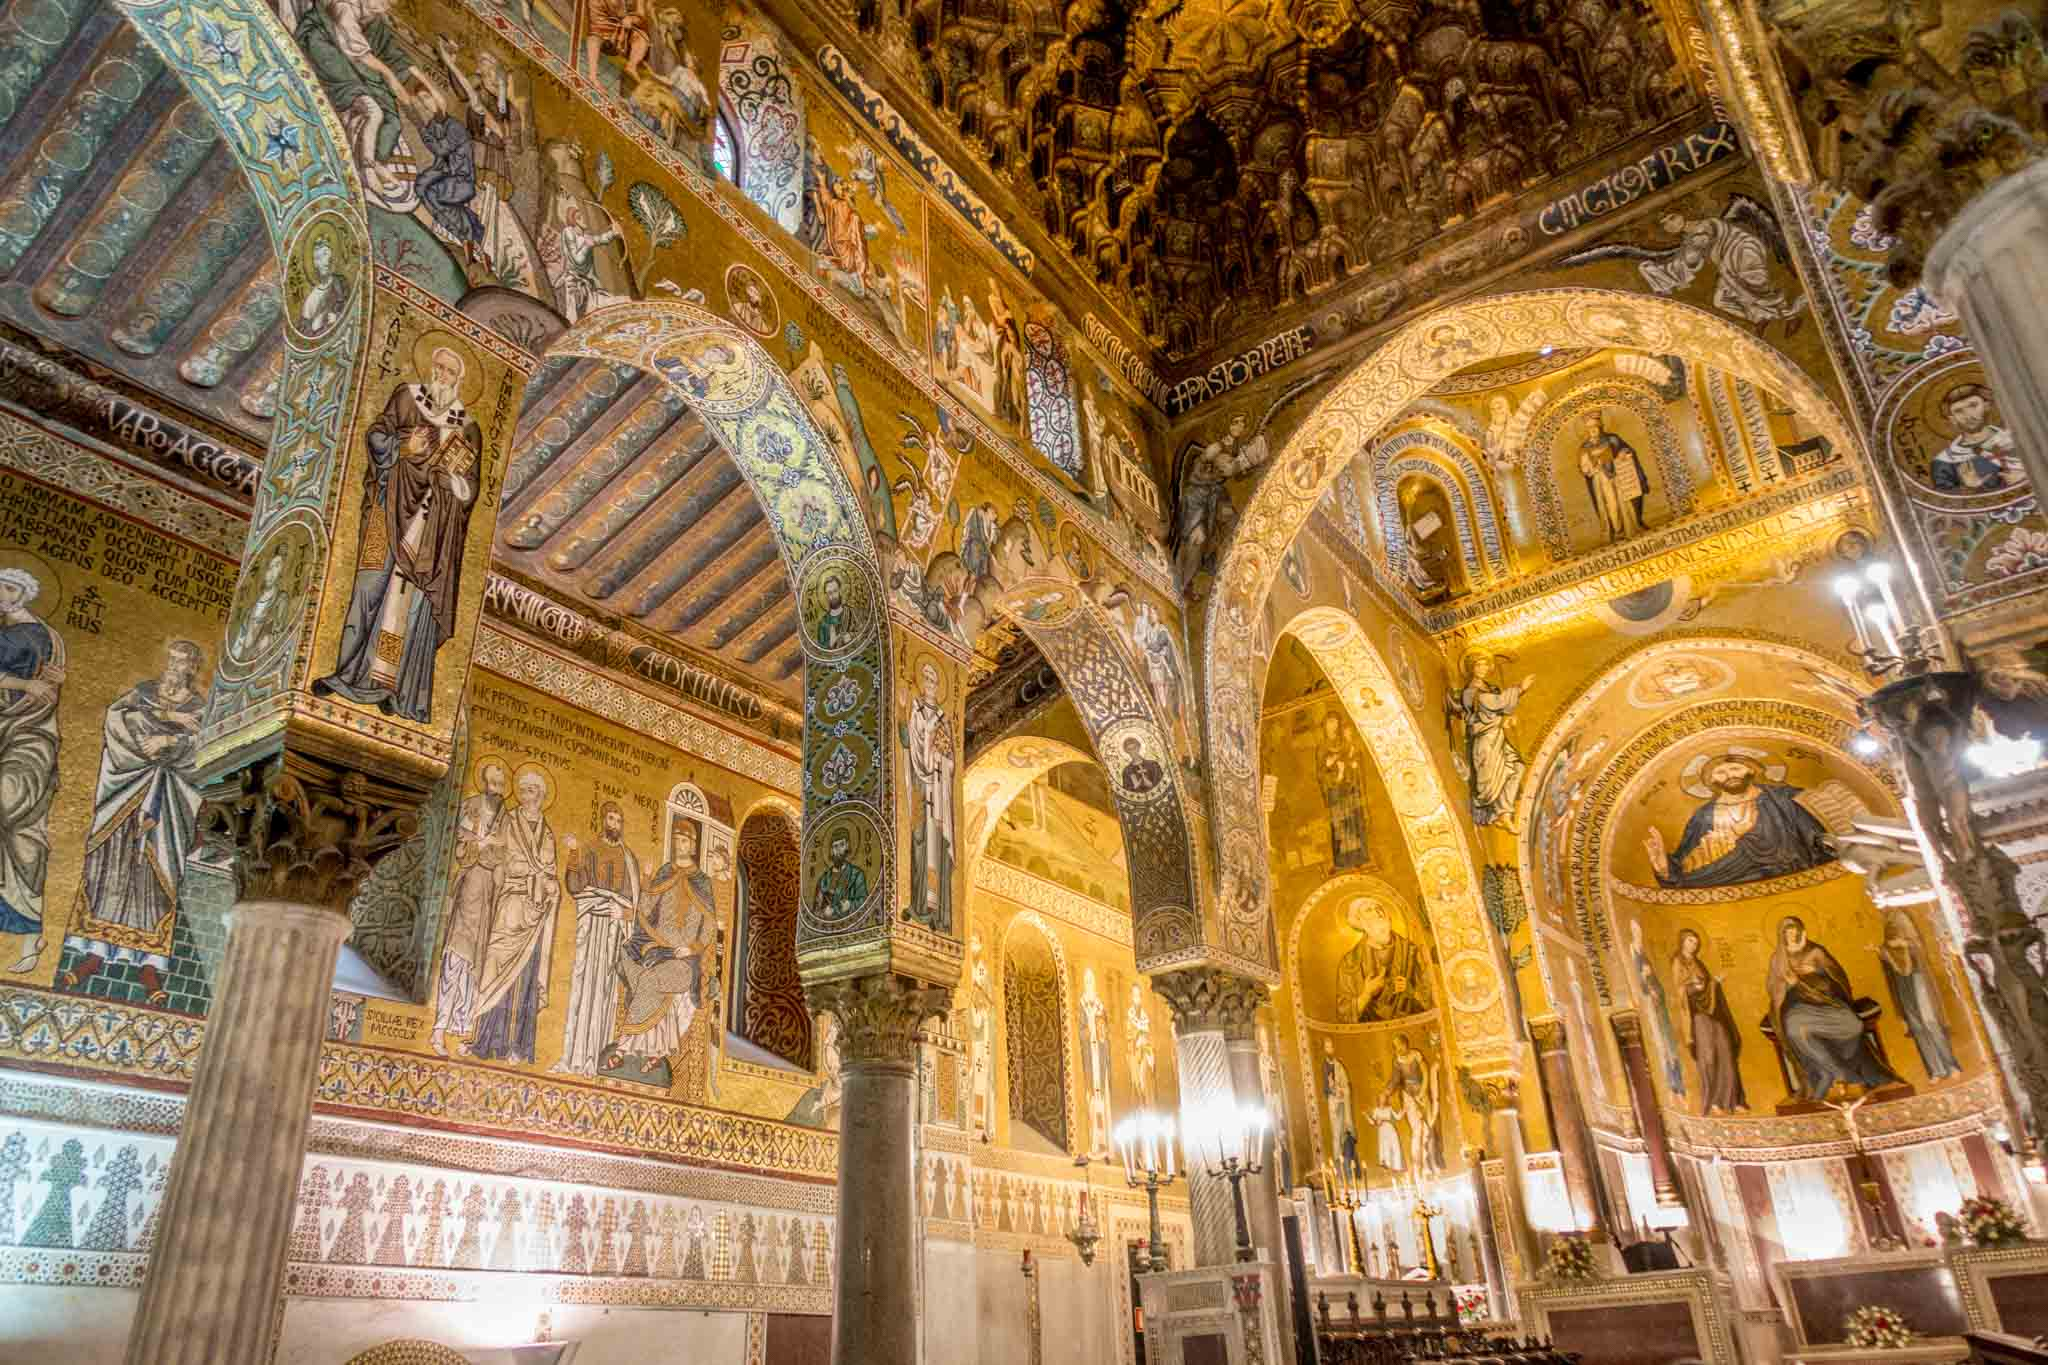 Chapel with pillars and vaulted ceiling covered with gold mosaics